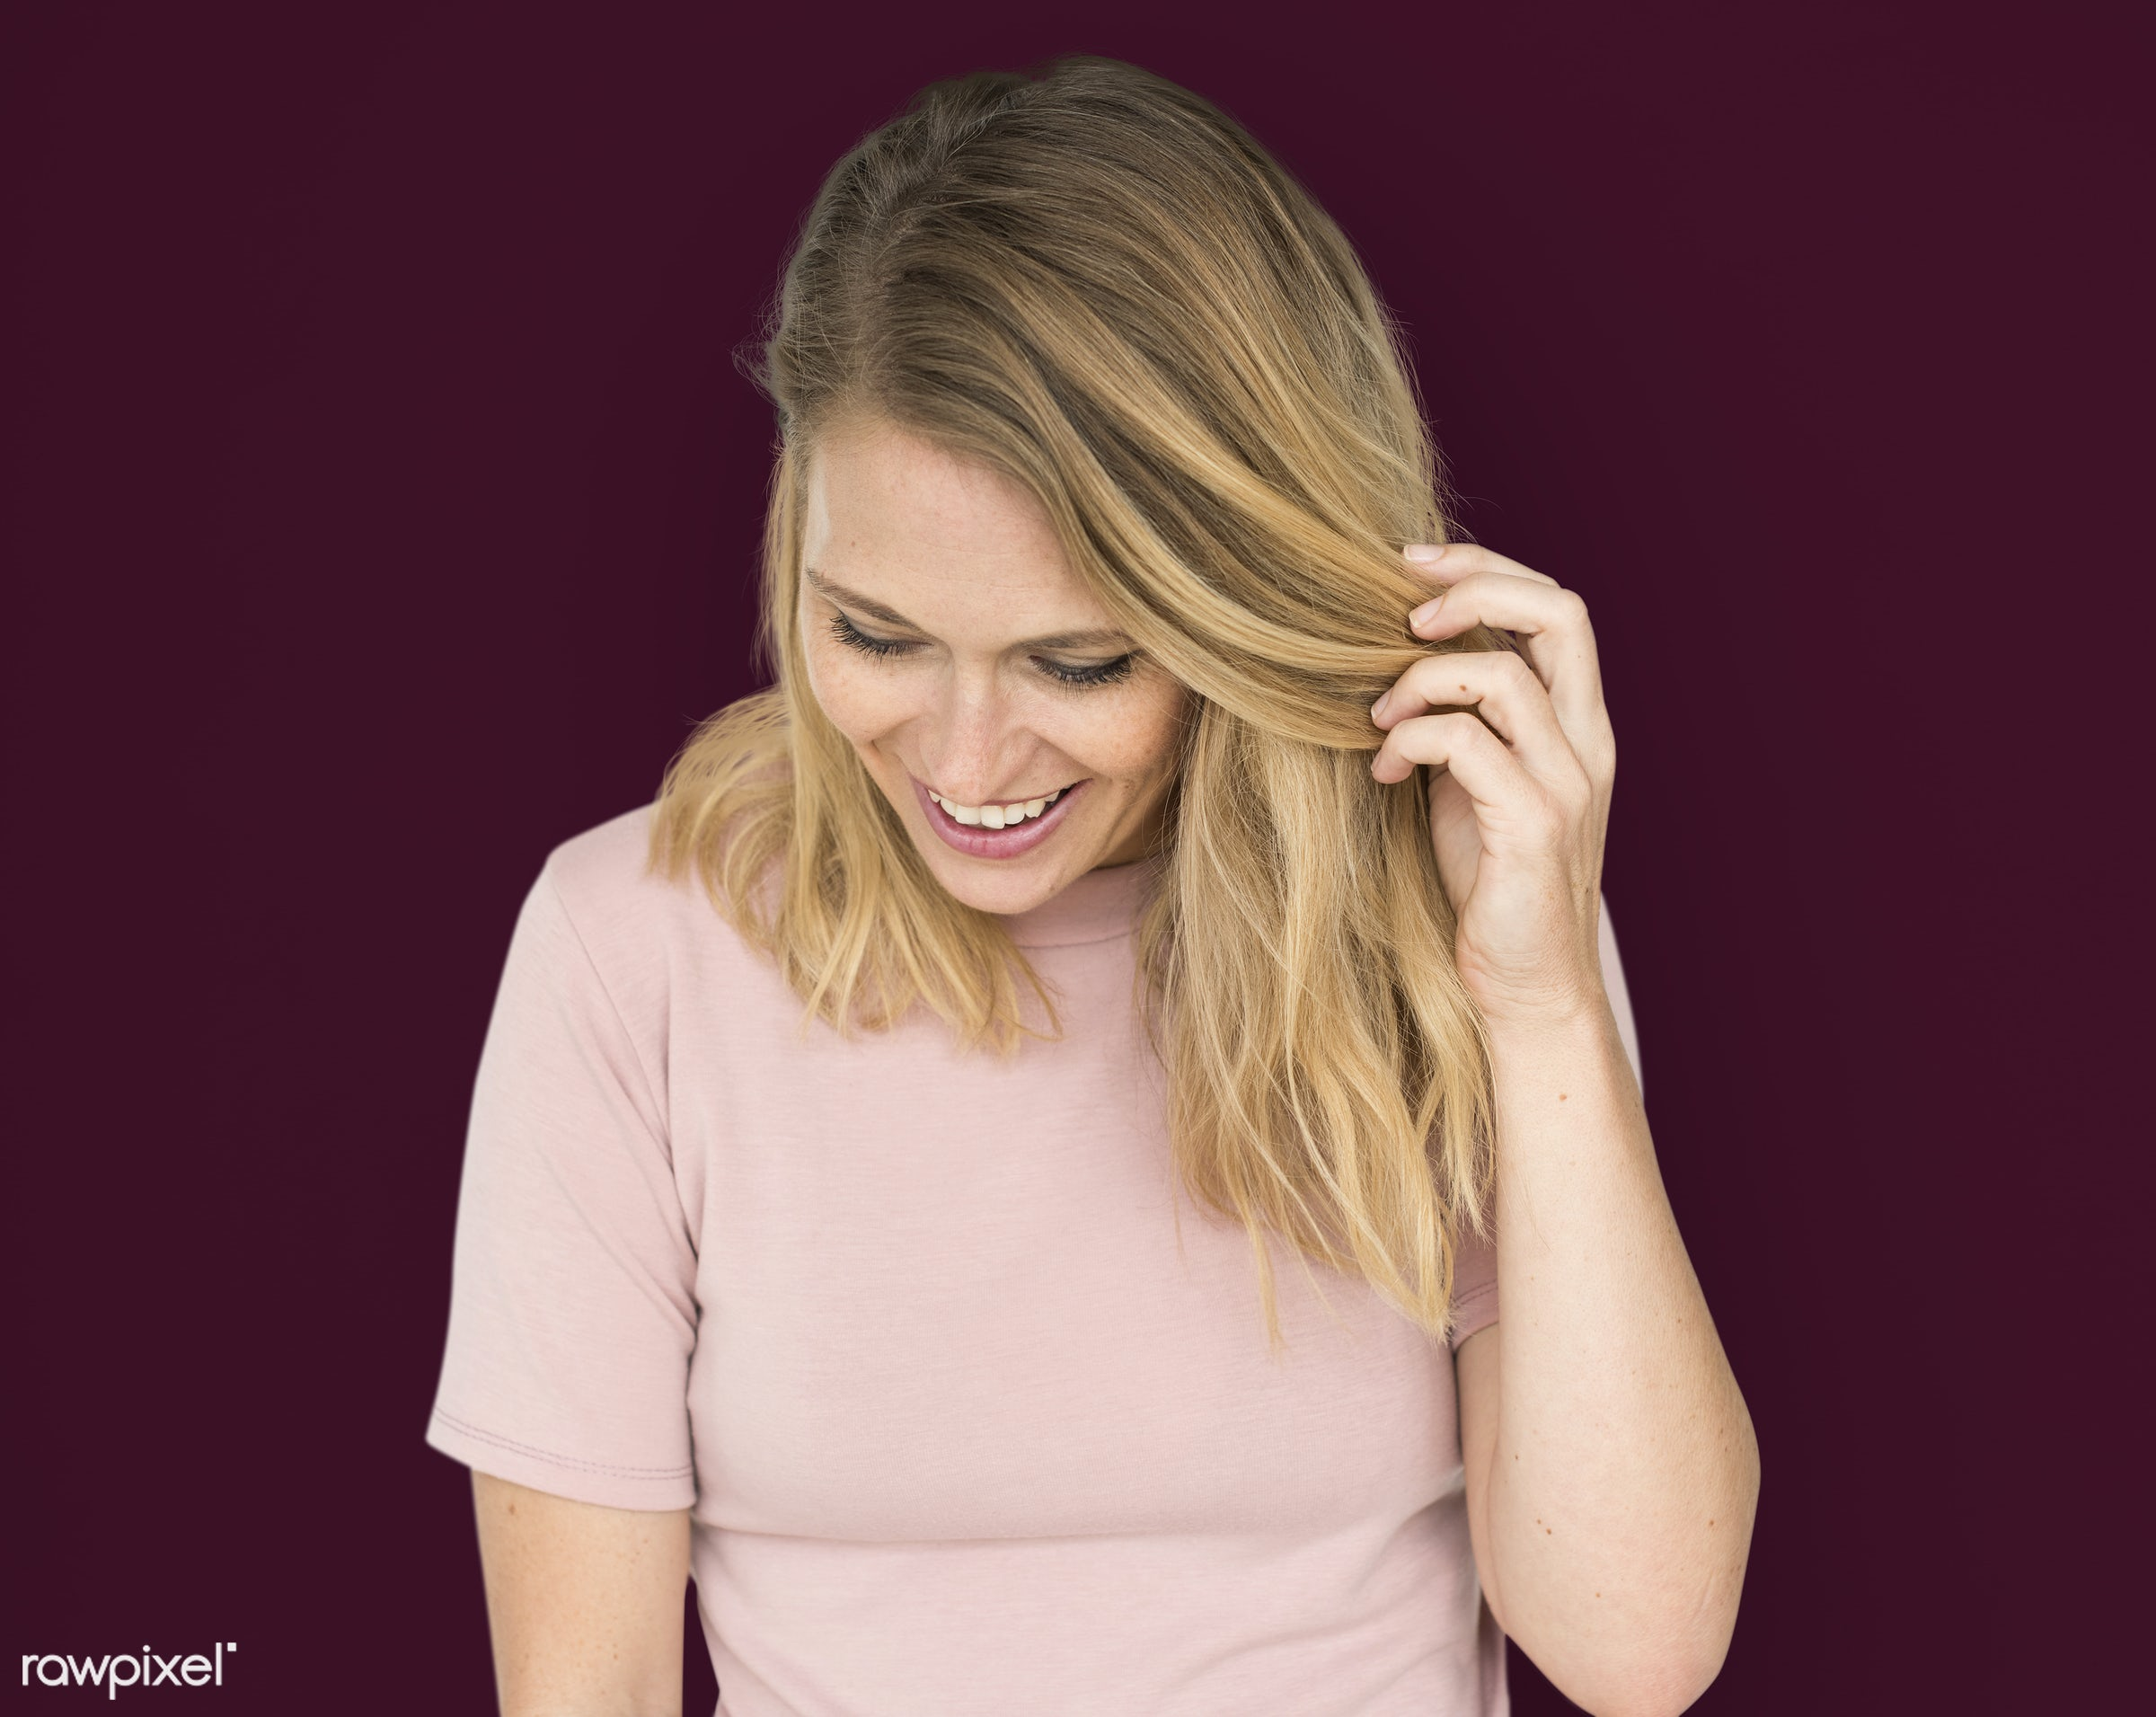 studio, expression, person, model, freedom, relax, optimistic, people, caucasian, laughing, woman, lifestyle, casual,...